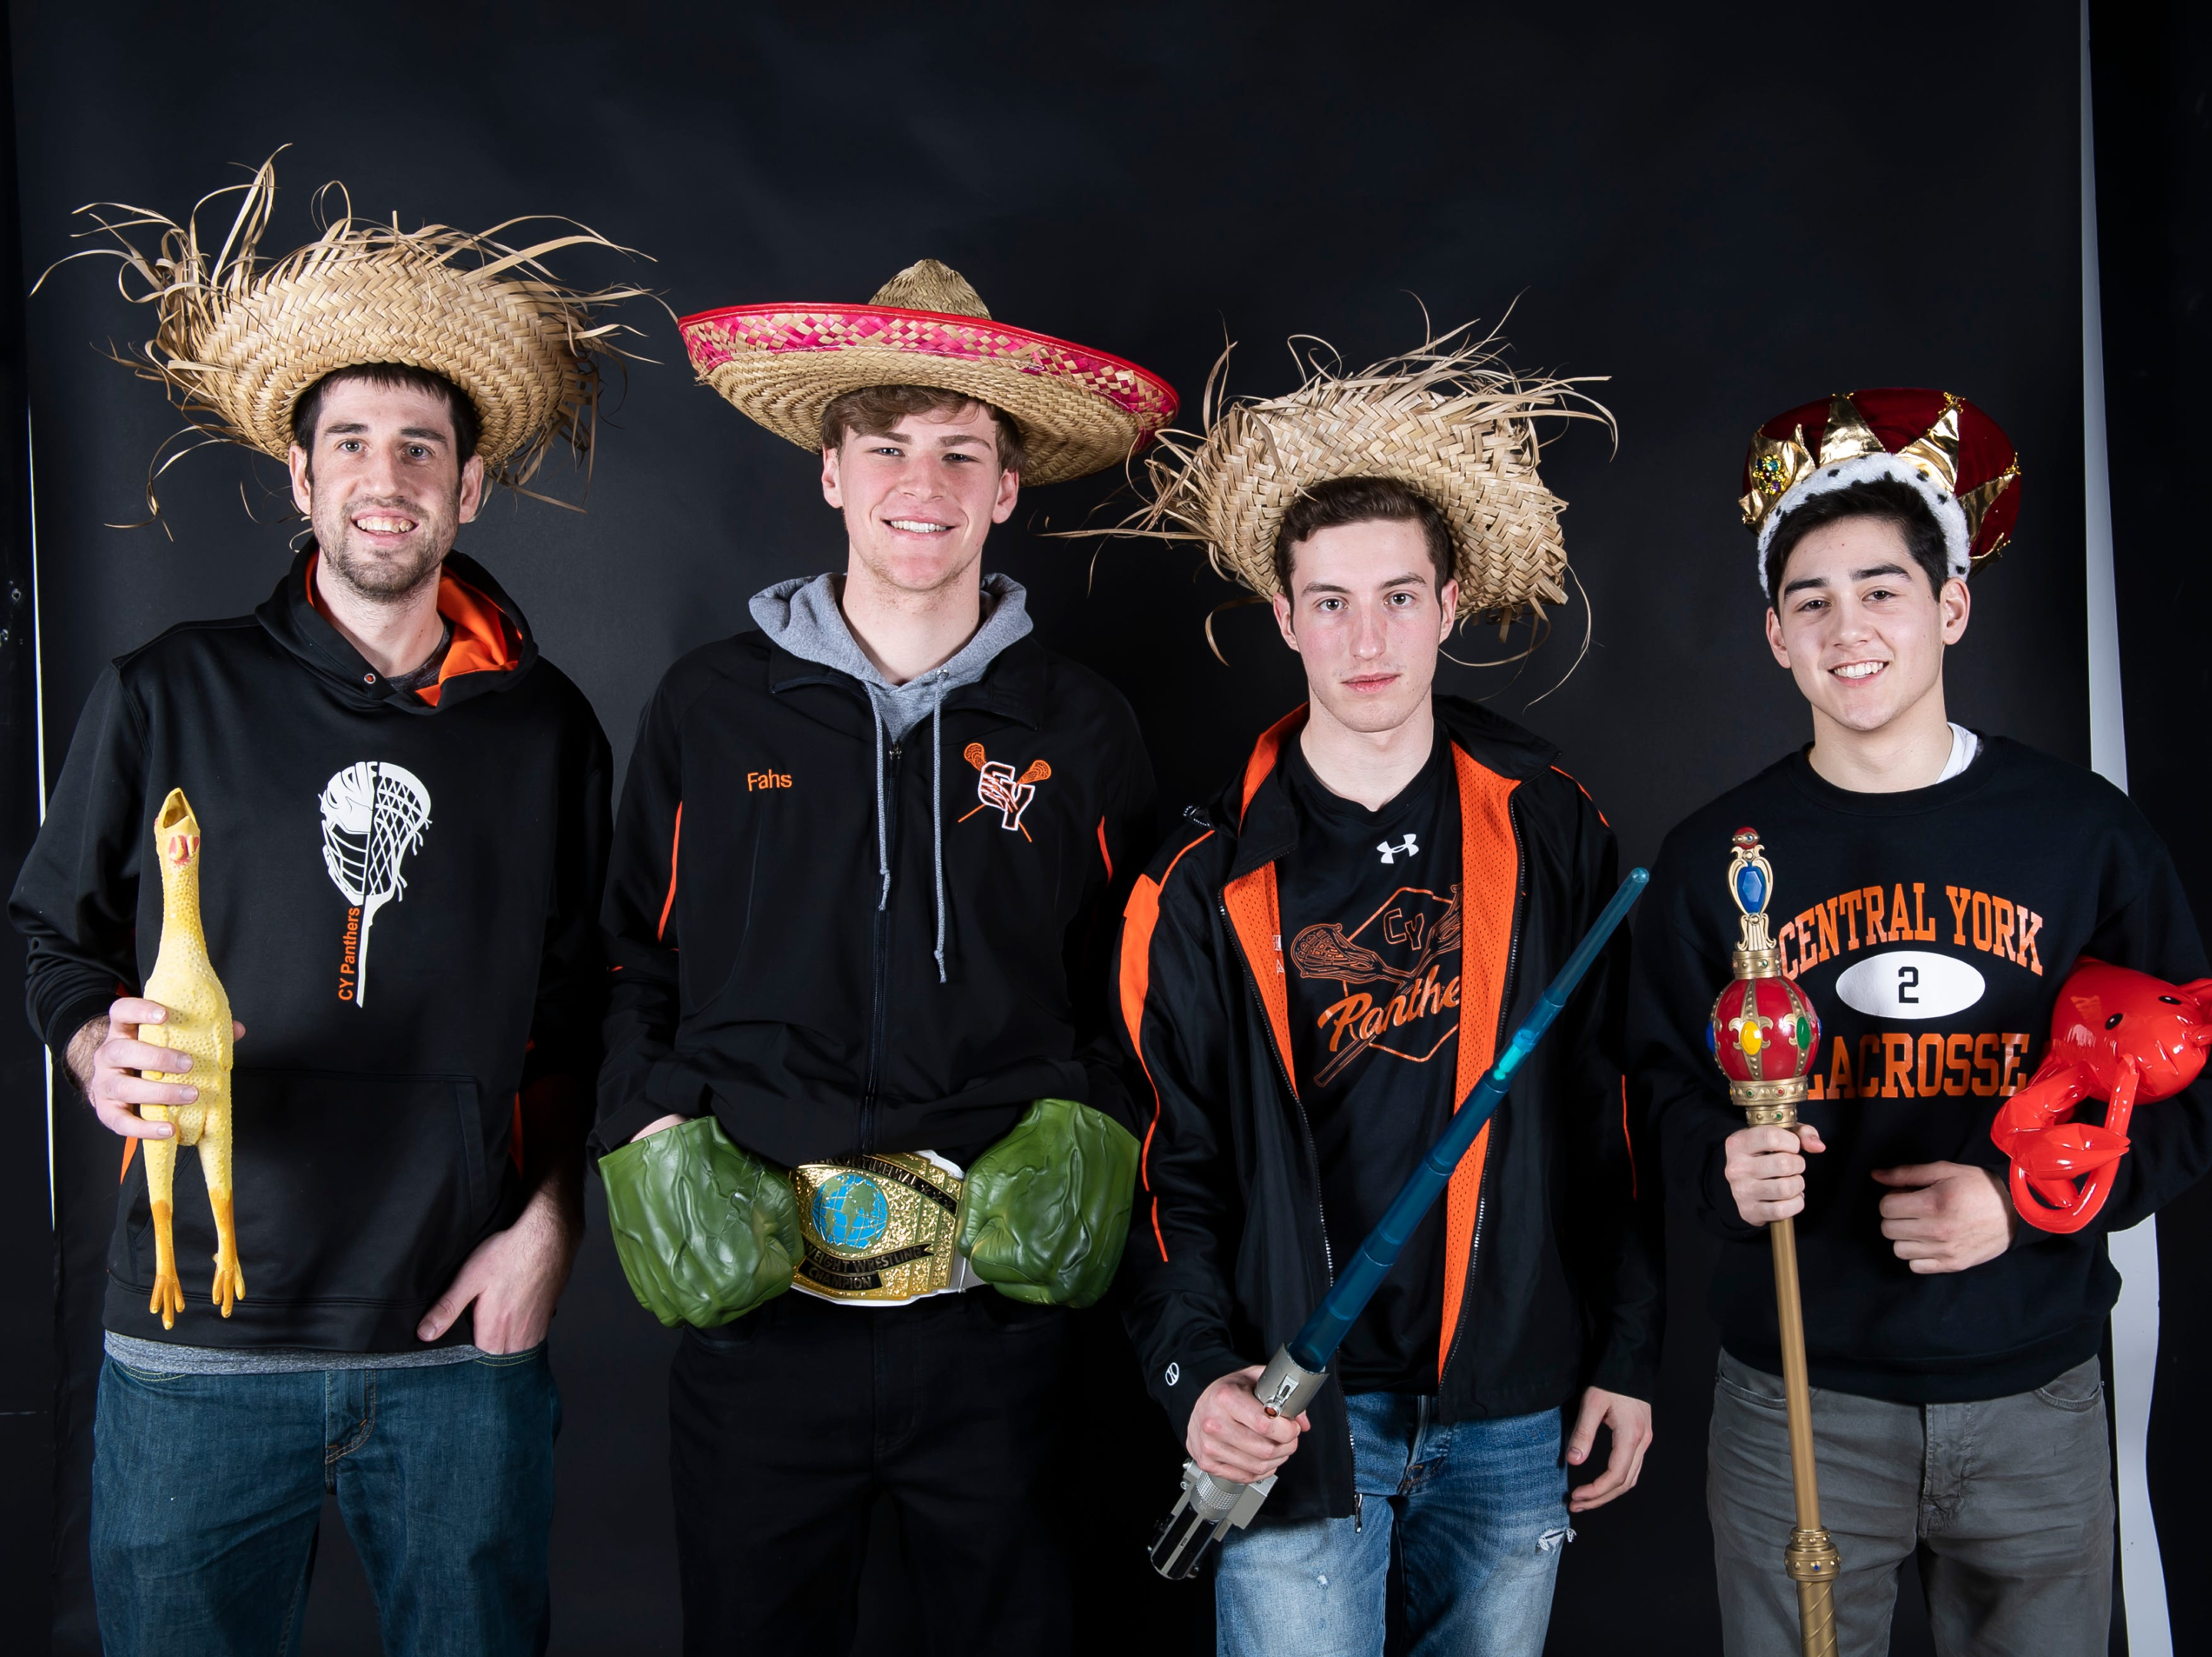 (From left) Central York lacrosse's coach Ryan Muller, Ryan Fans, Aaron Czech and Drake Little strike a pose in the GameTimePA photo booth during spring sports media day in York Sunday, March 10, 2019.